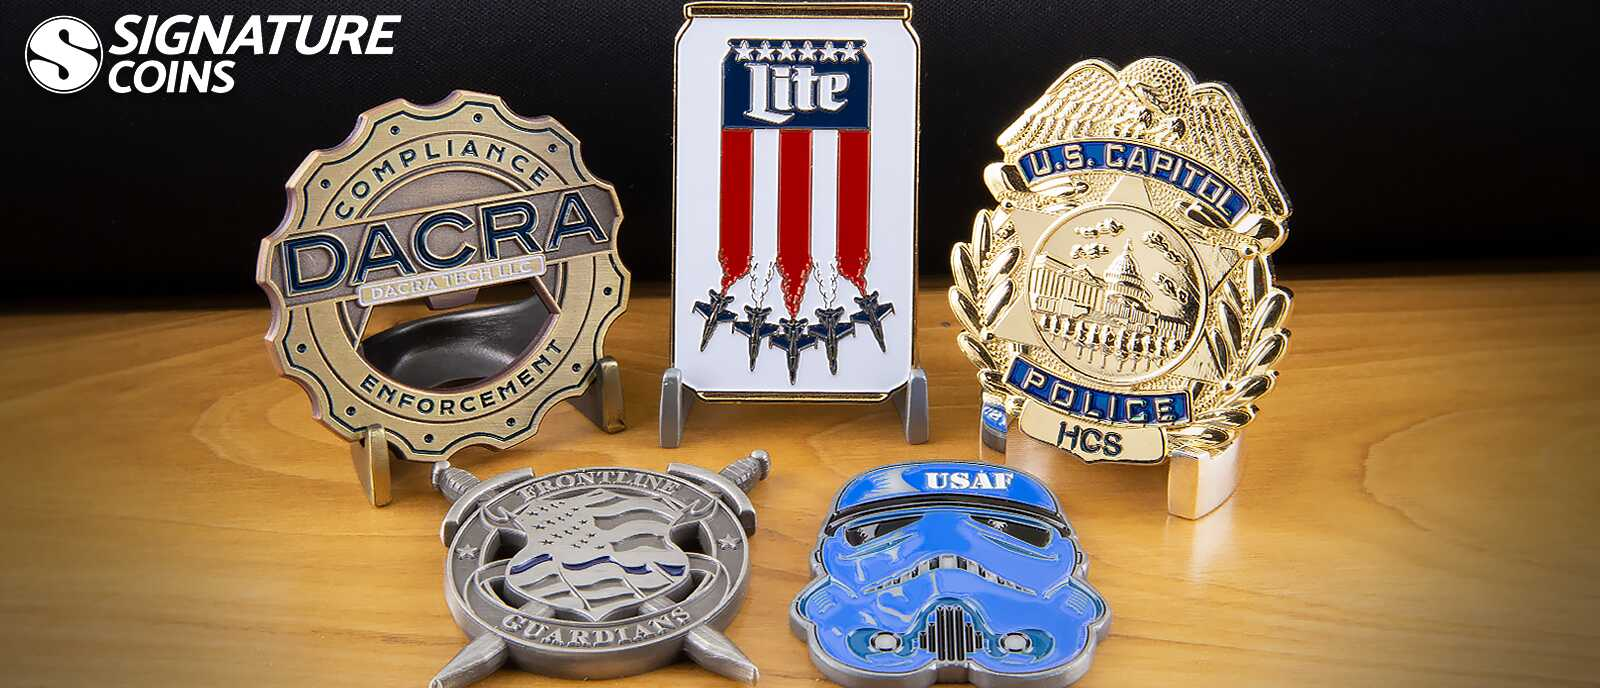 signaturecoins-corporate-sheriff-customshape-challenge-coins1